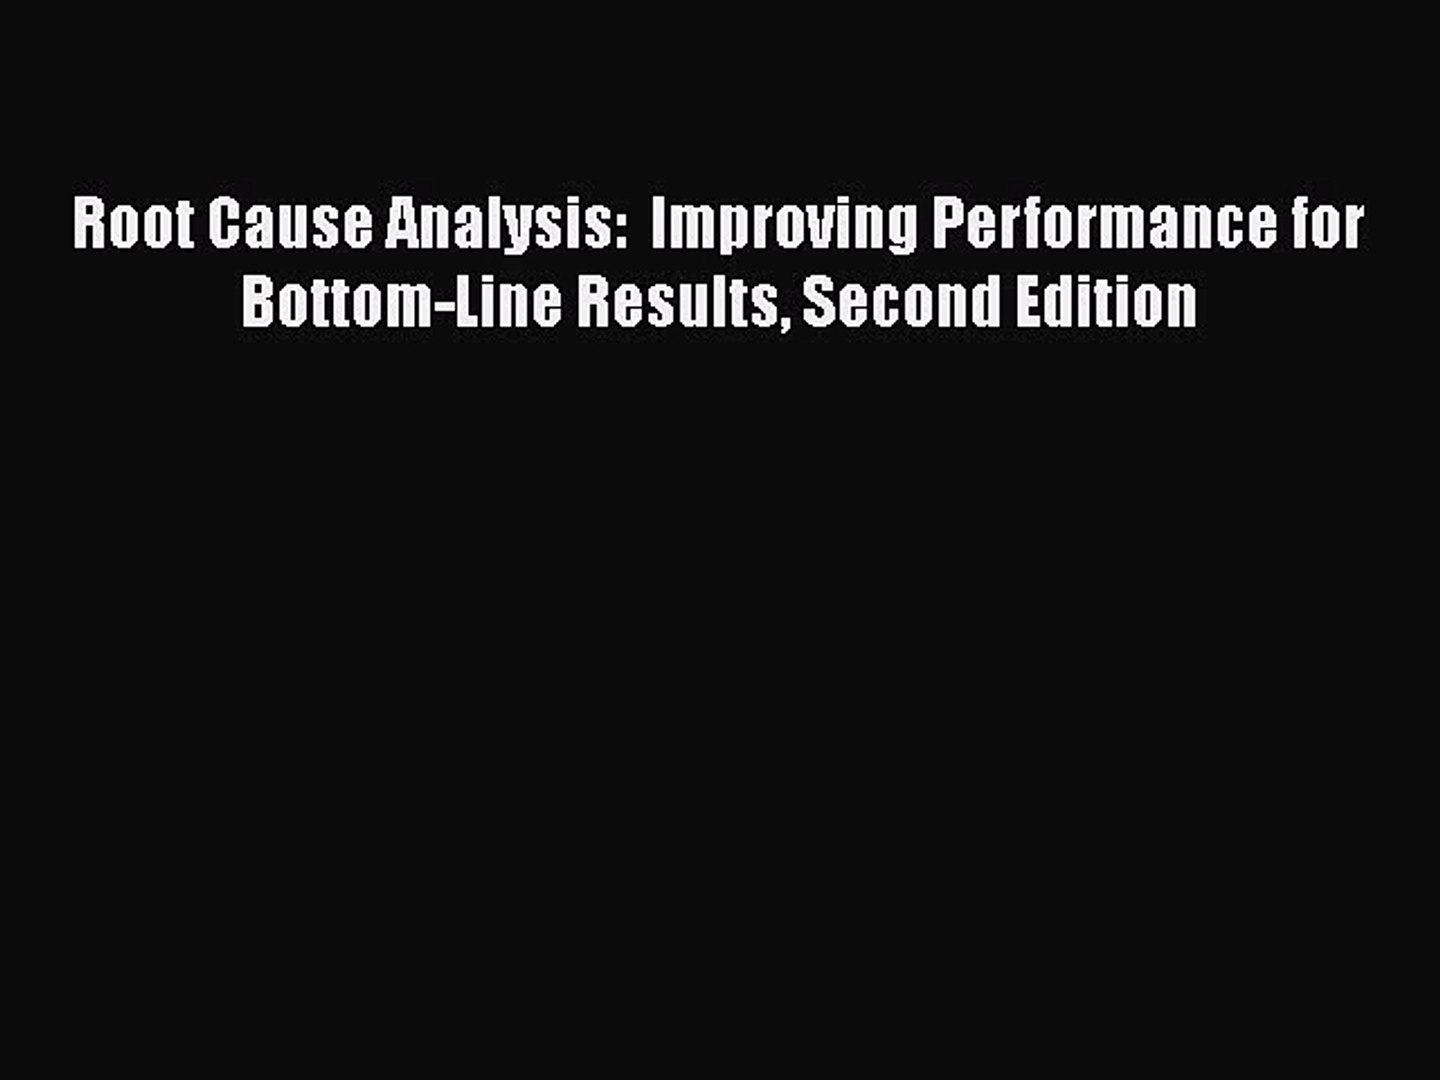 [Read book] Root Cause Analysis:  Improving Performance for Bottom-Line Results Second Edition